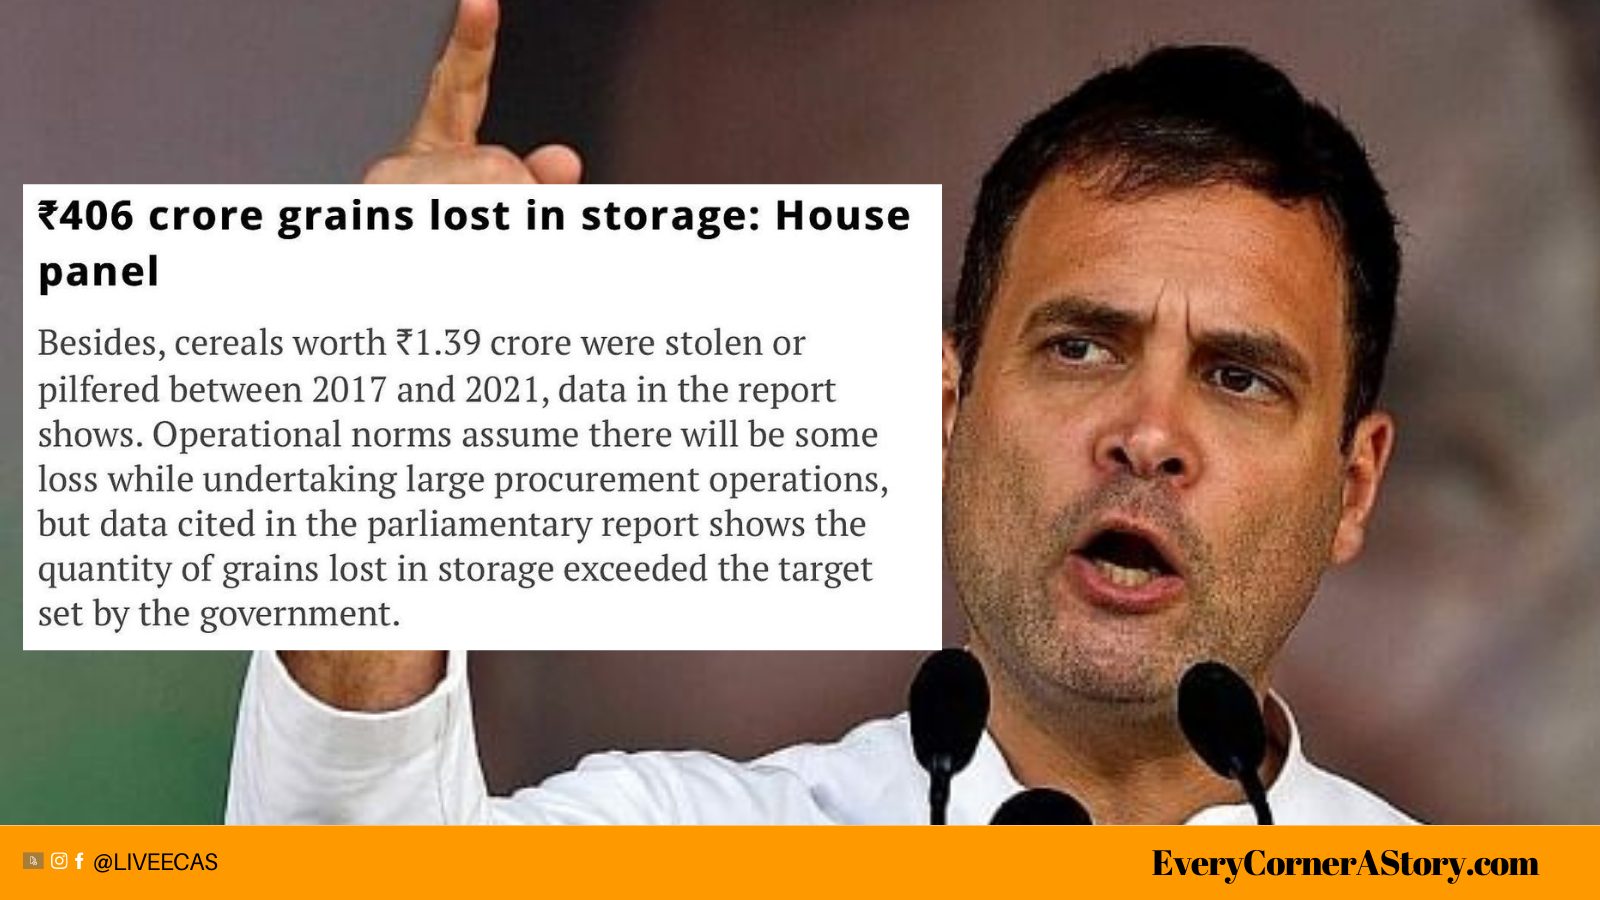 Rahul Gandhi criticises the government for losing Rs 406 crore worth of grains